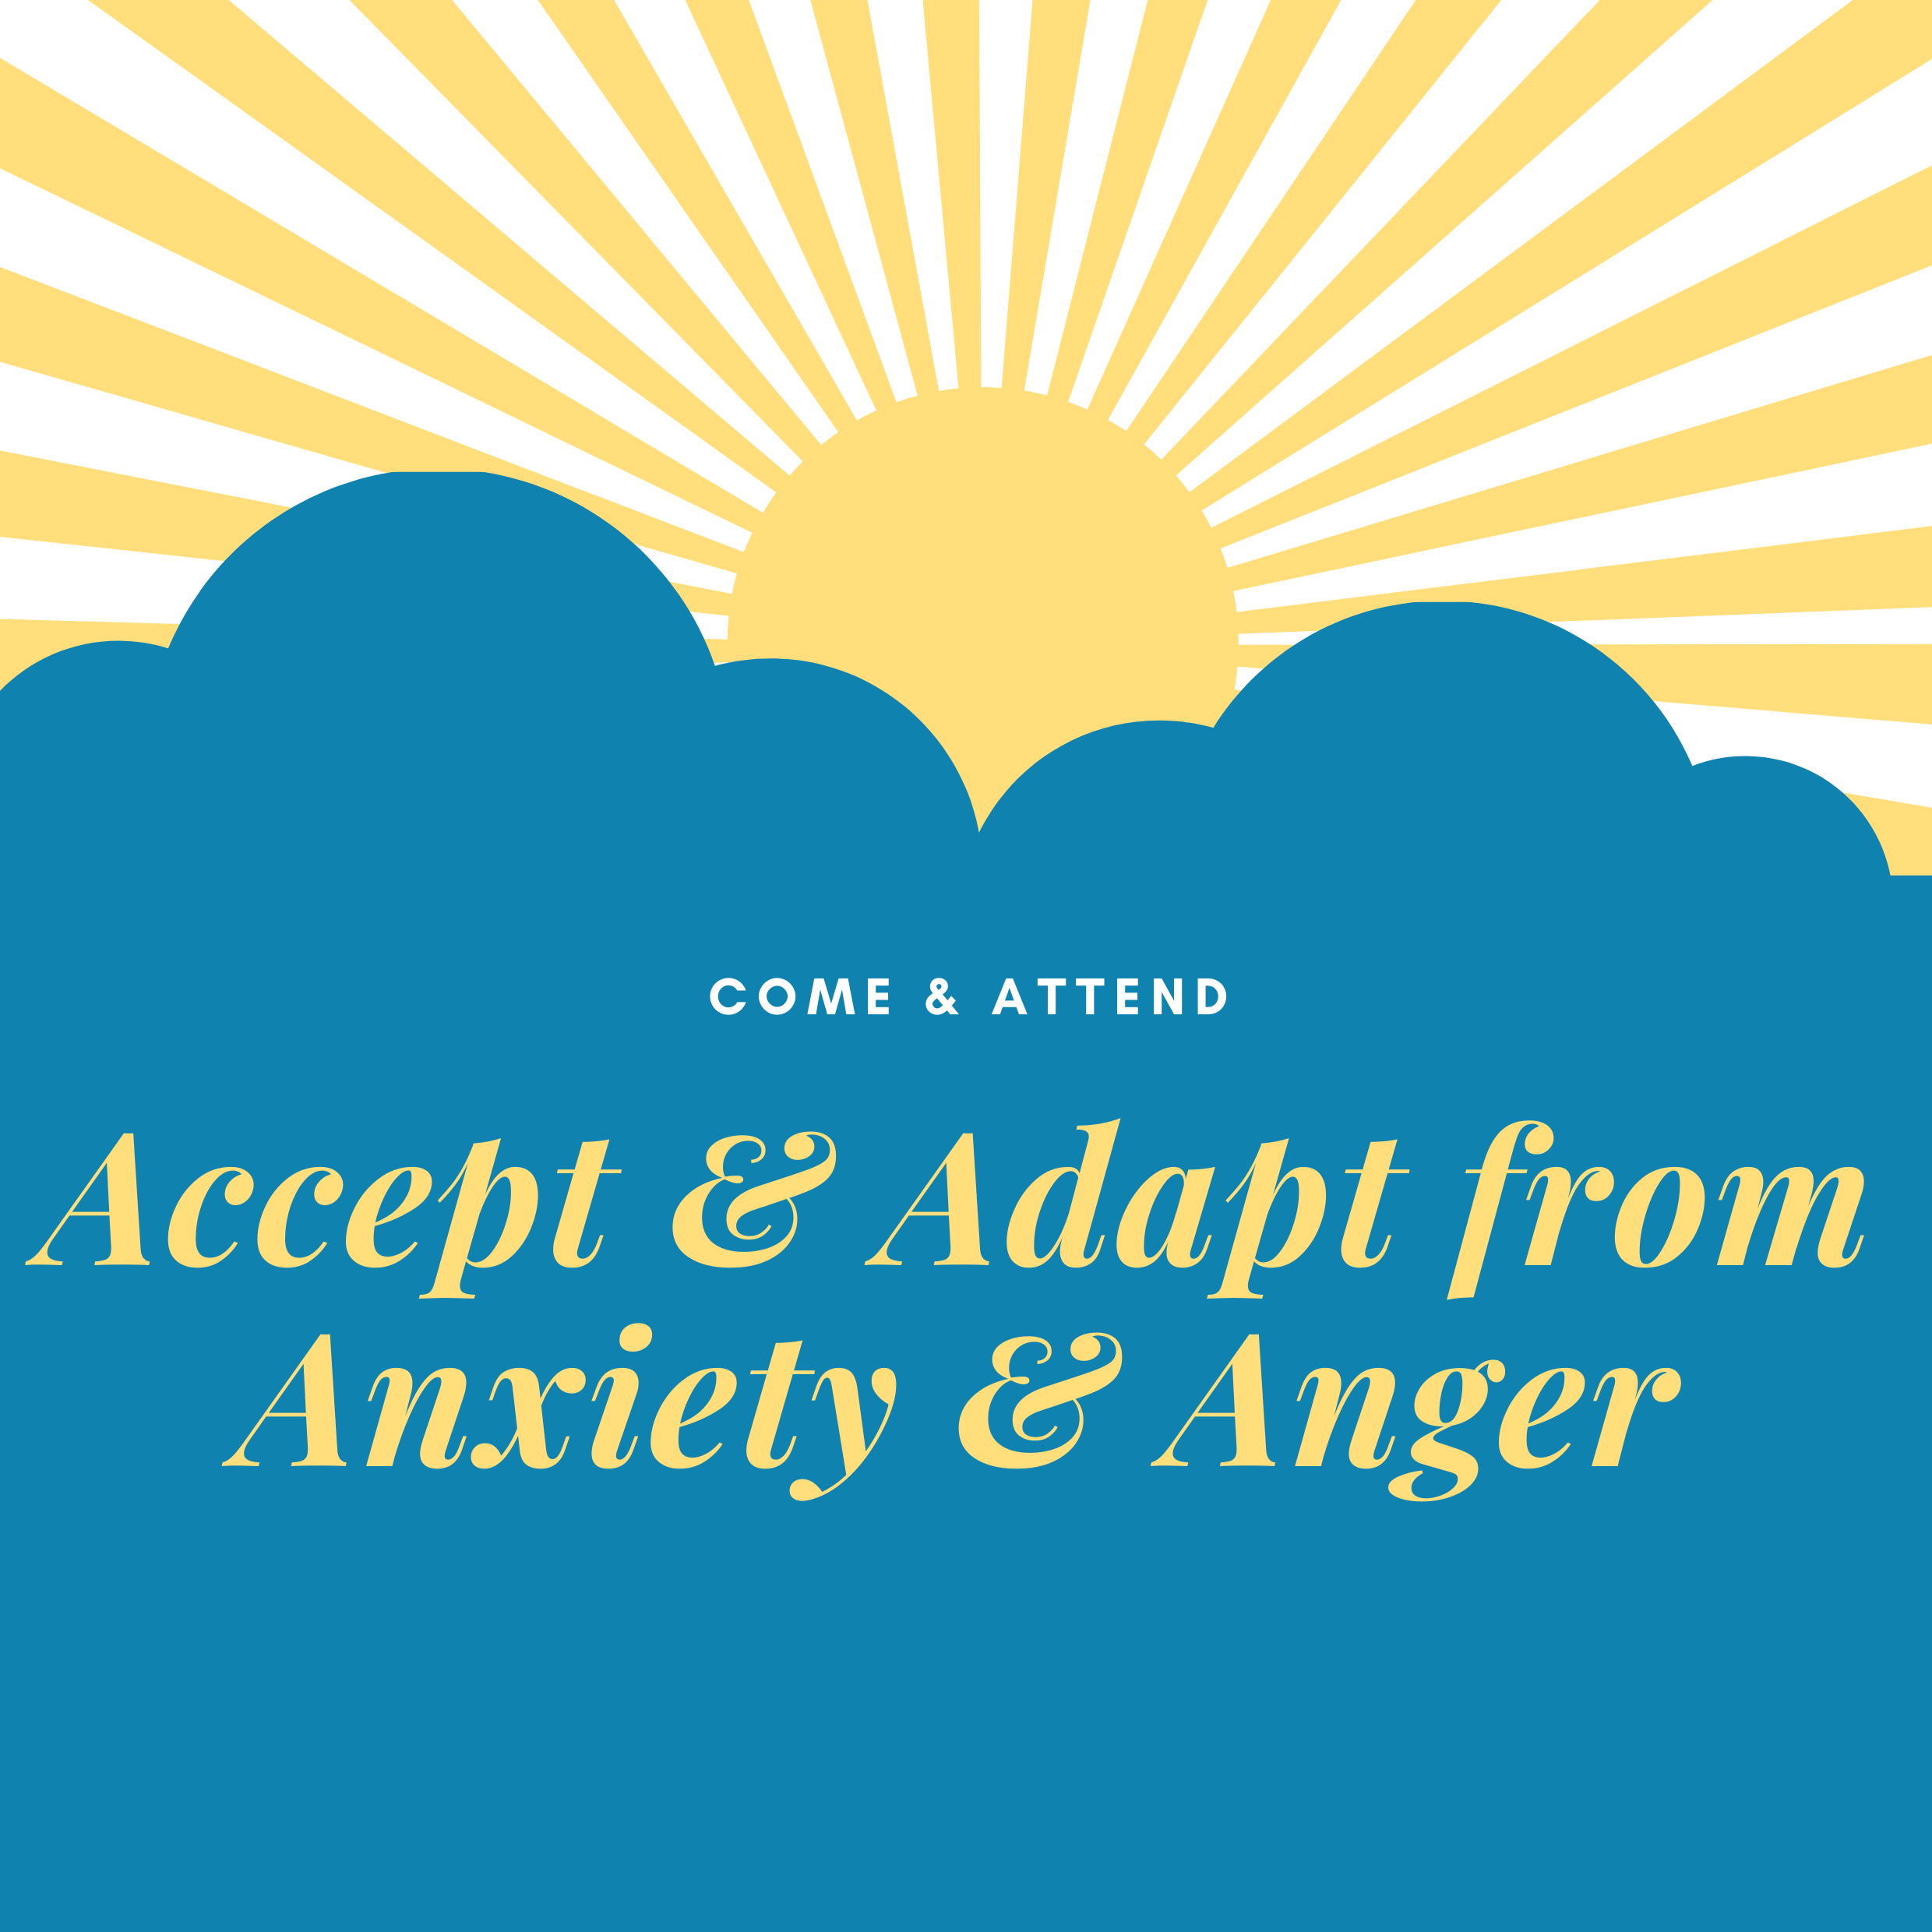 Accept & Adapt from Anxiety & Anger